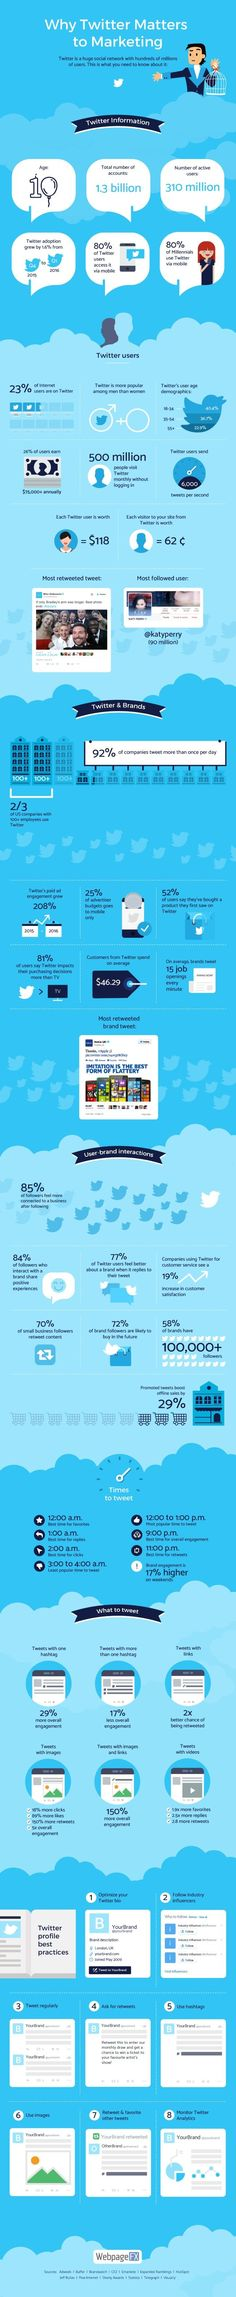 Why Marketers Should Use Twitter (Infographic)